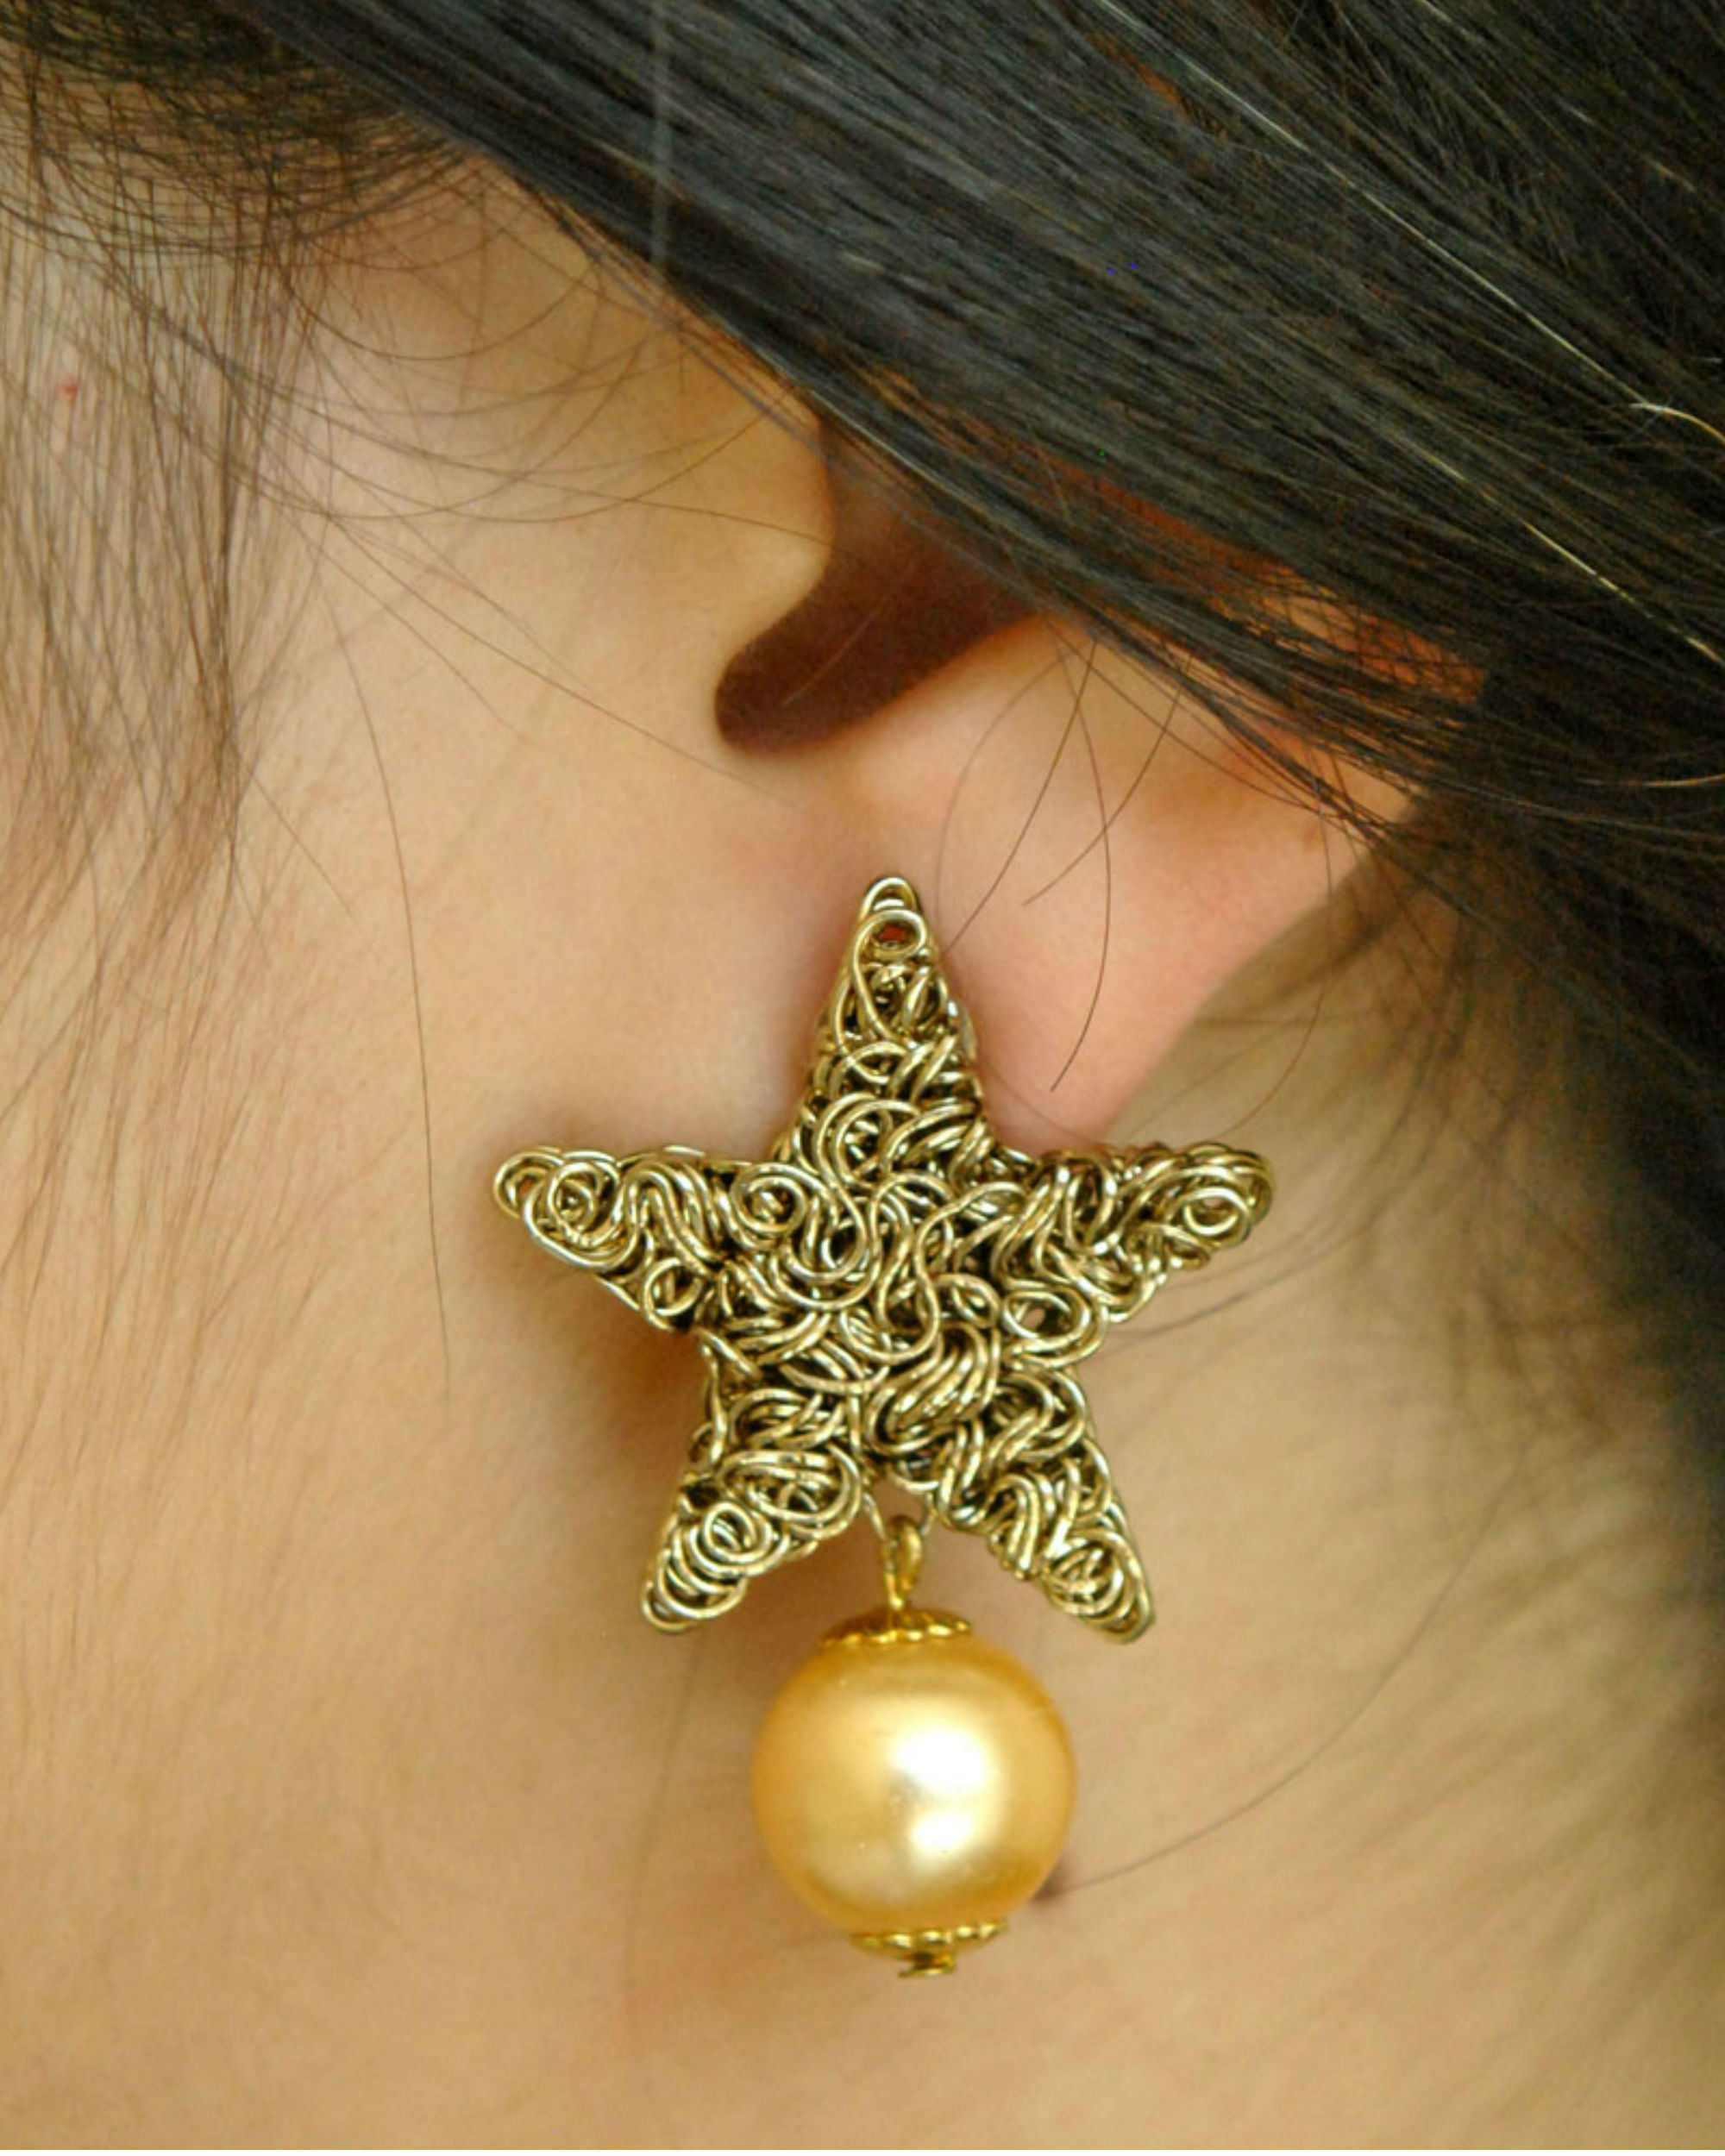 Star mesh earrings